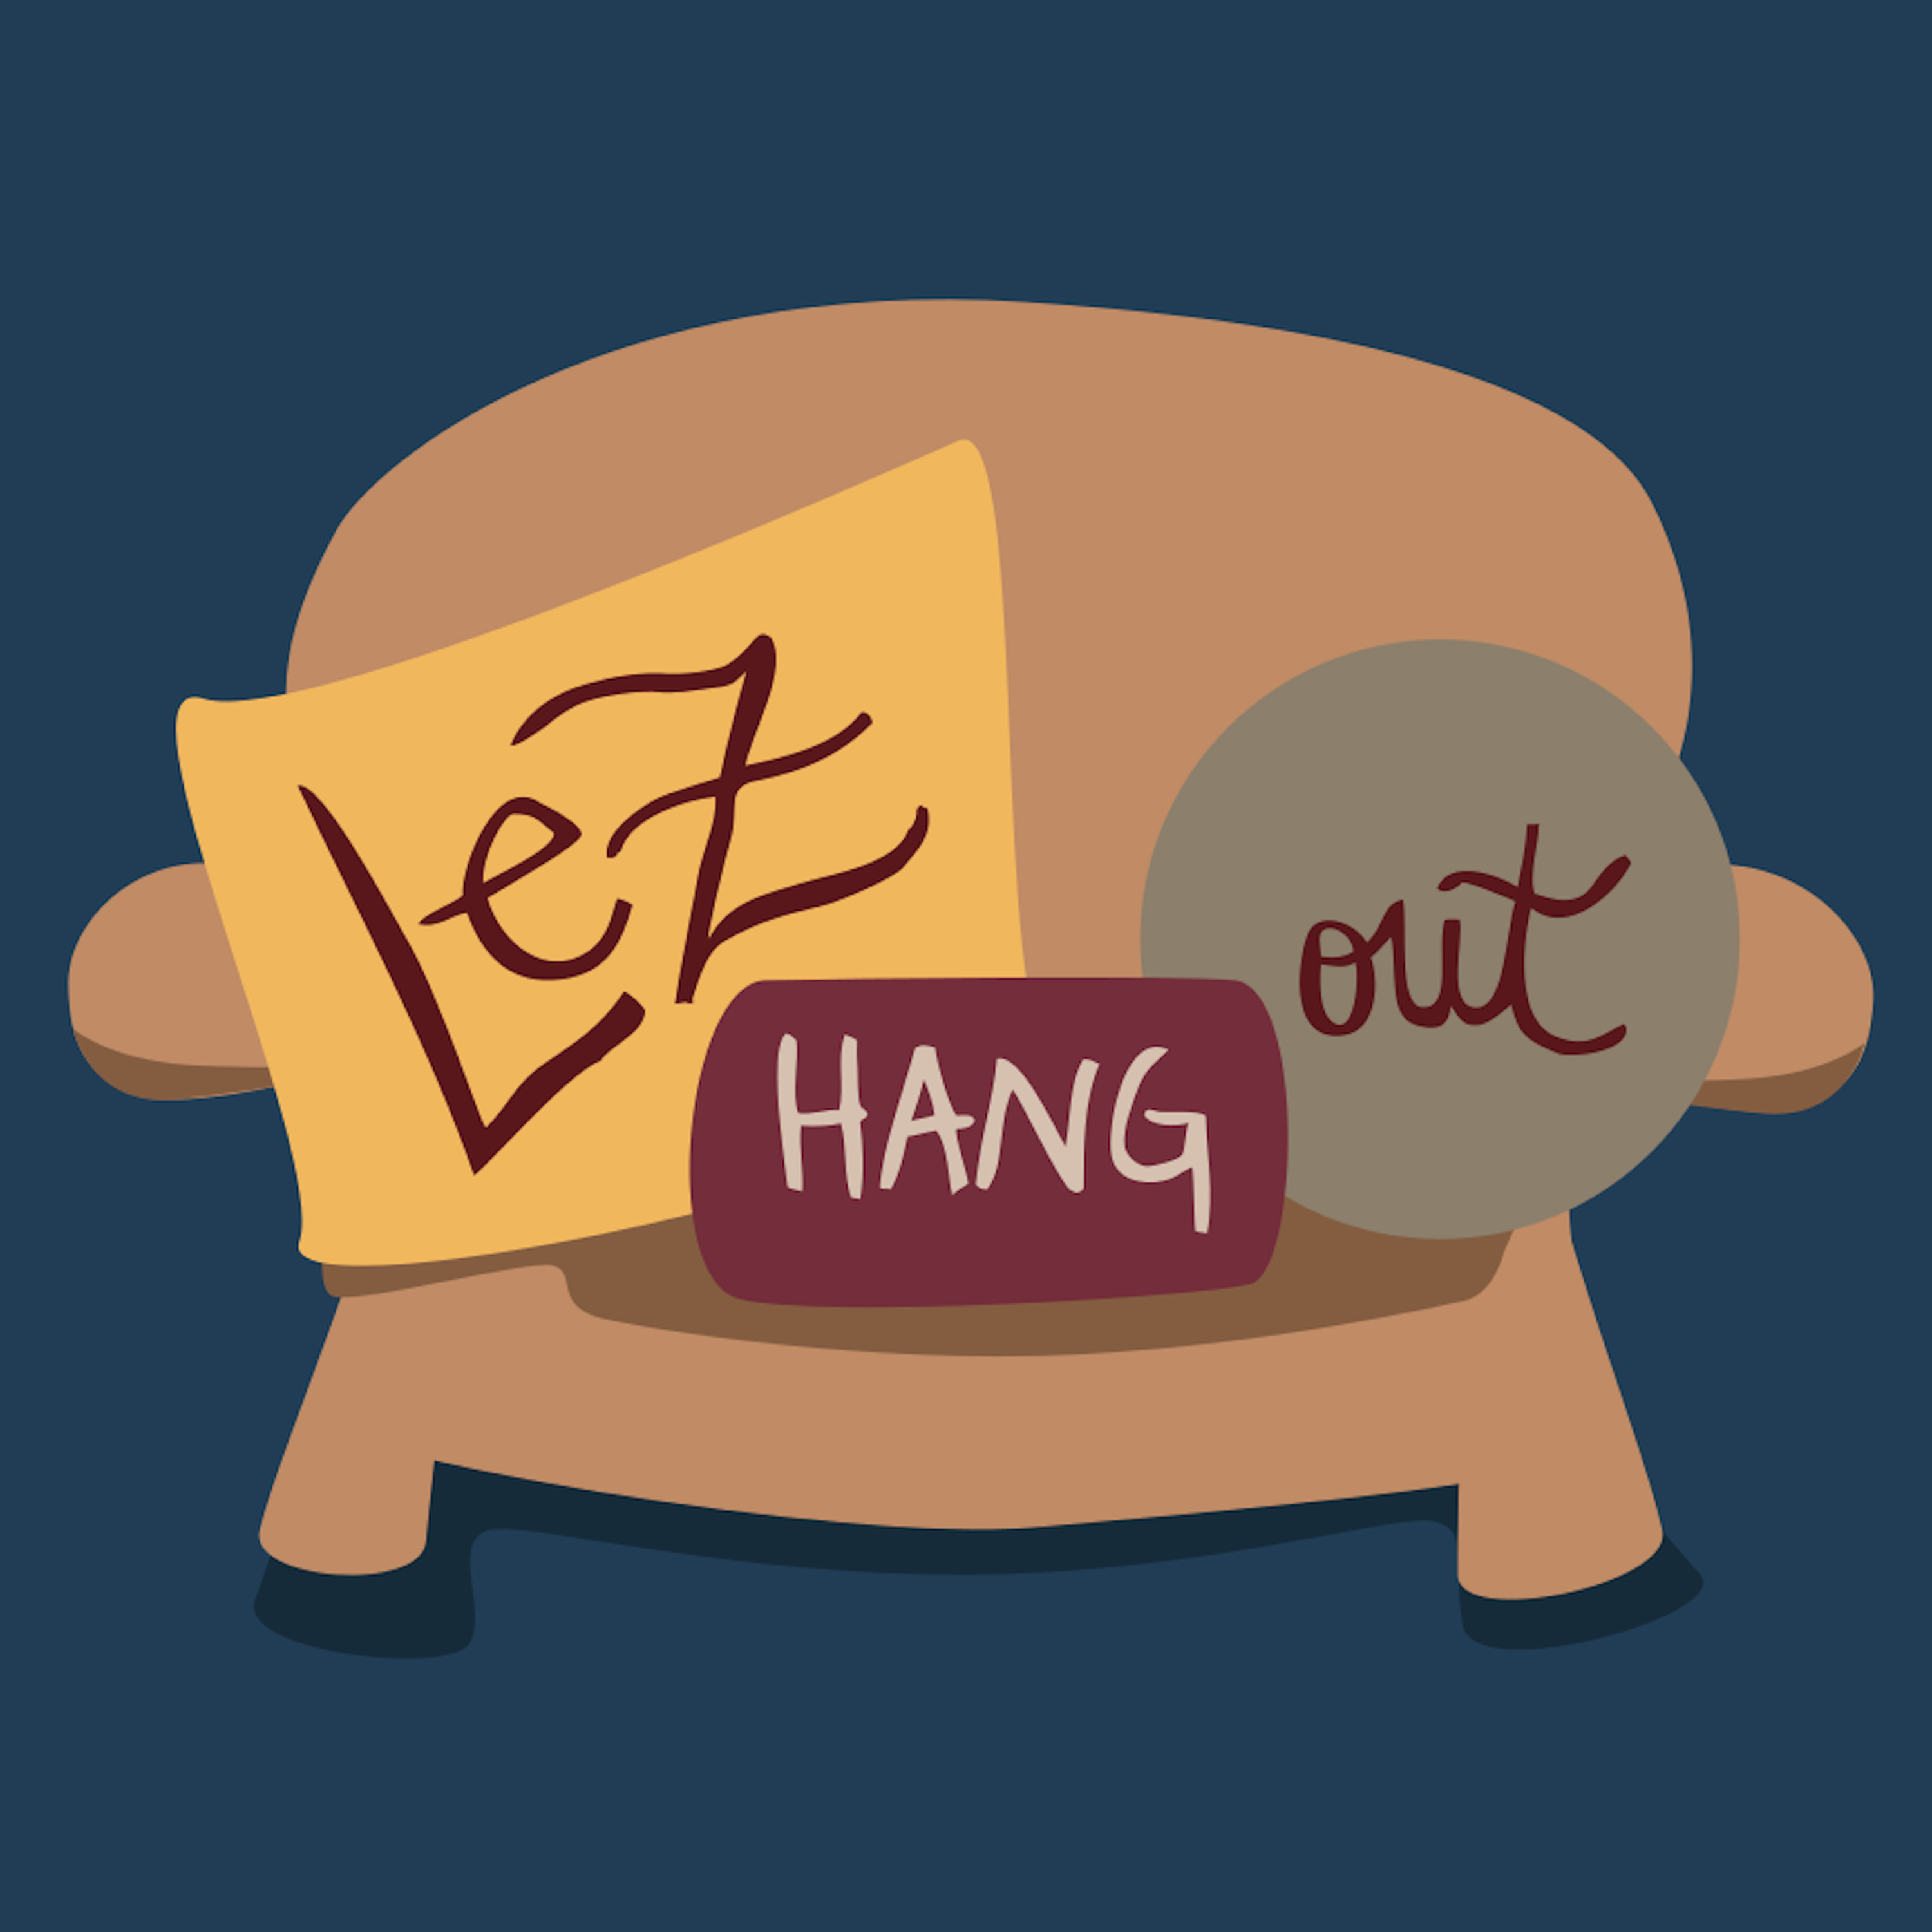 Lez Hang Out | A Lesbian Podcast - SBG2: Rizzoli and Isles Should Have Been Gay